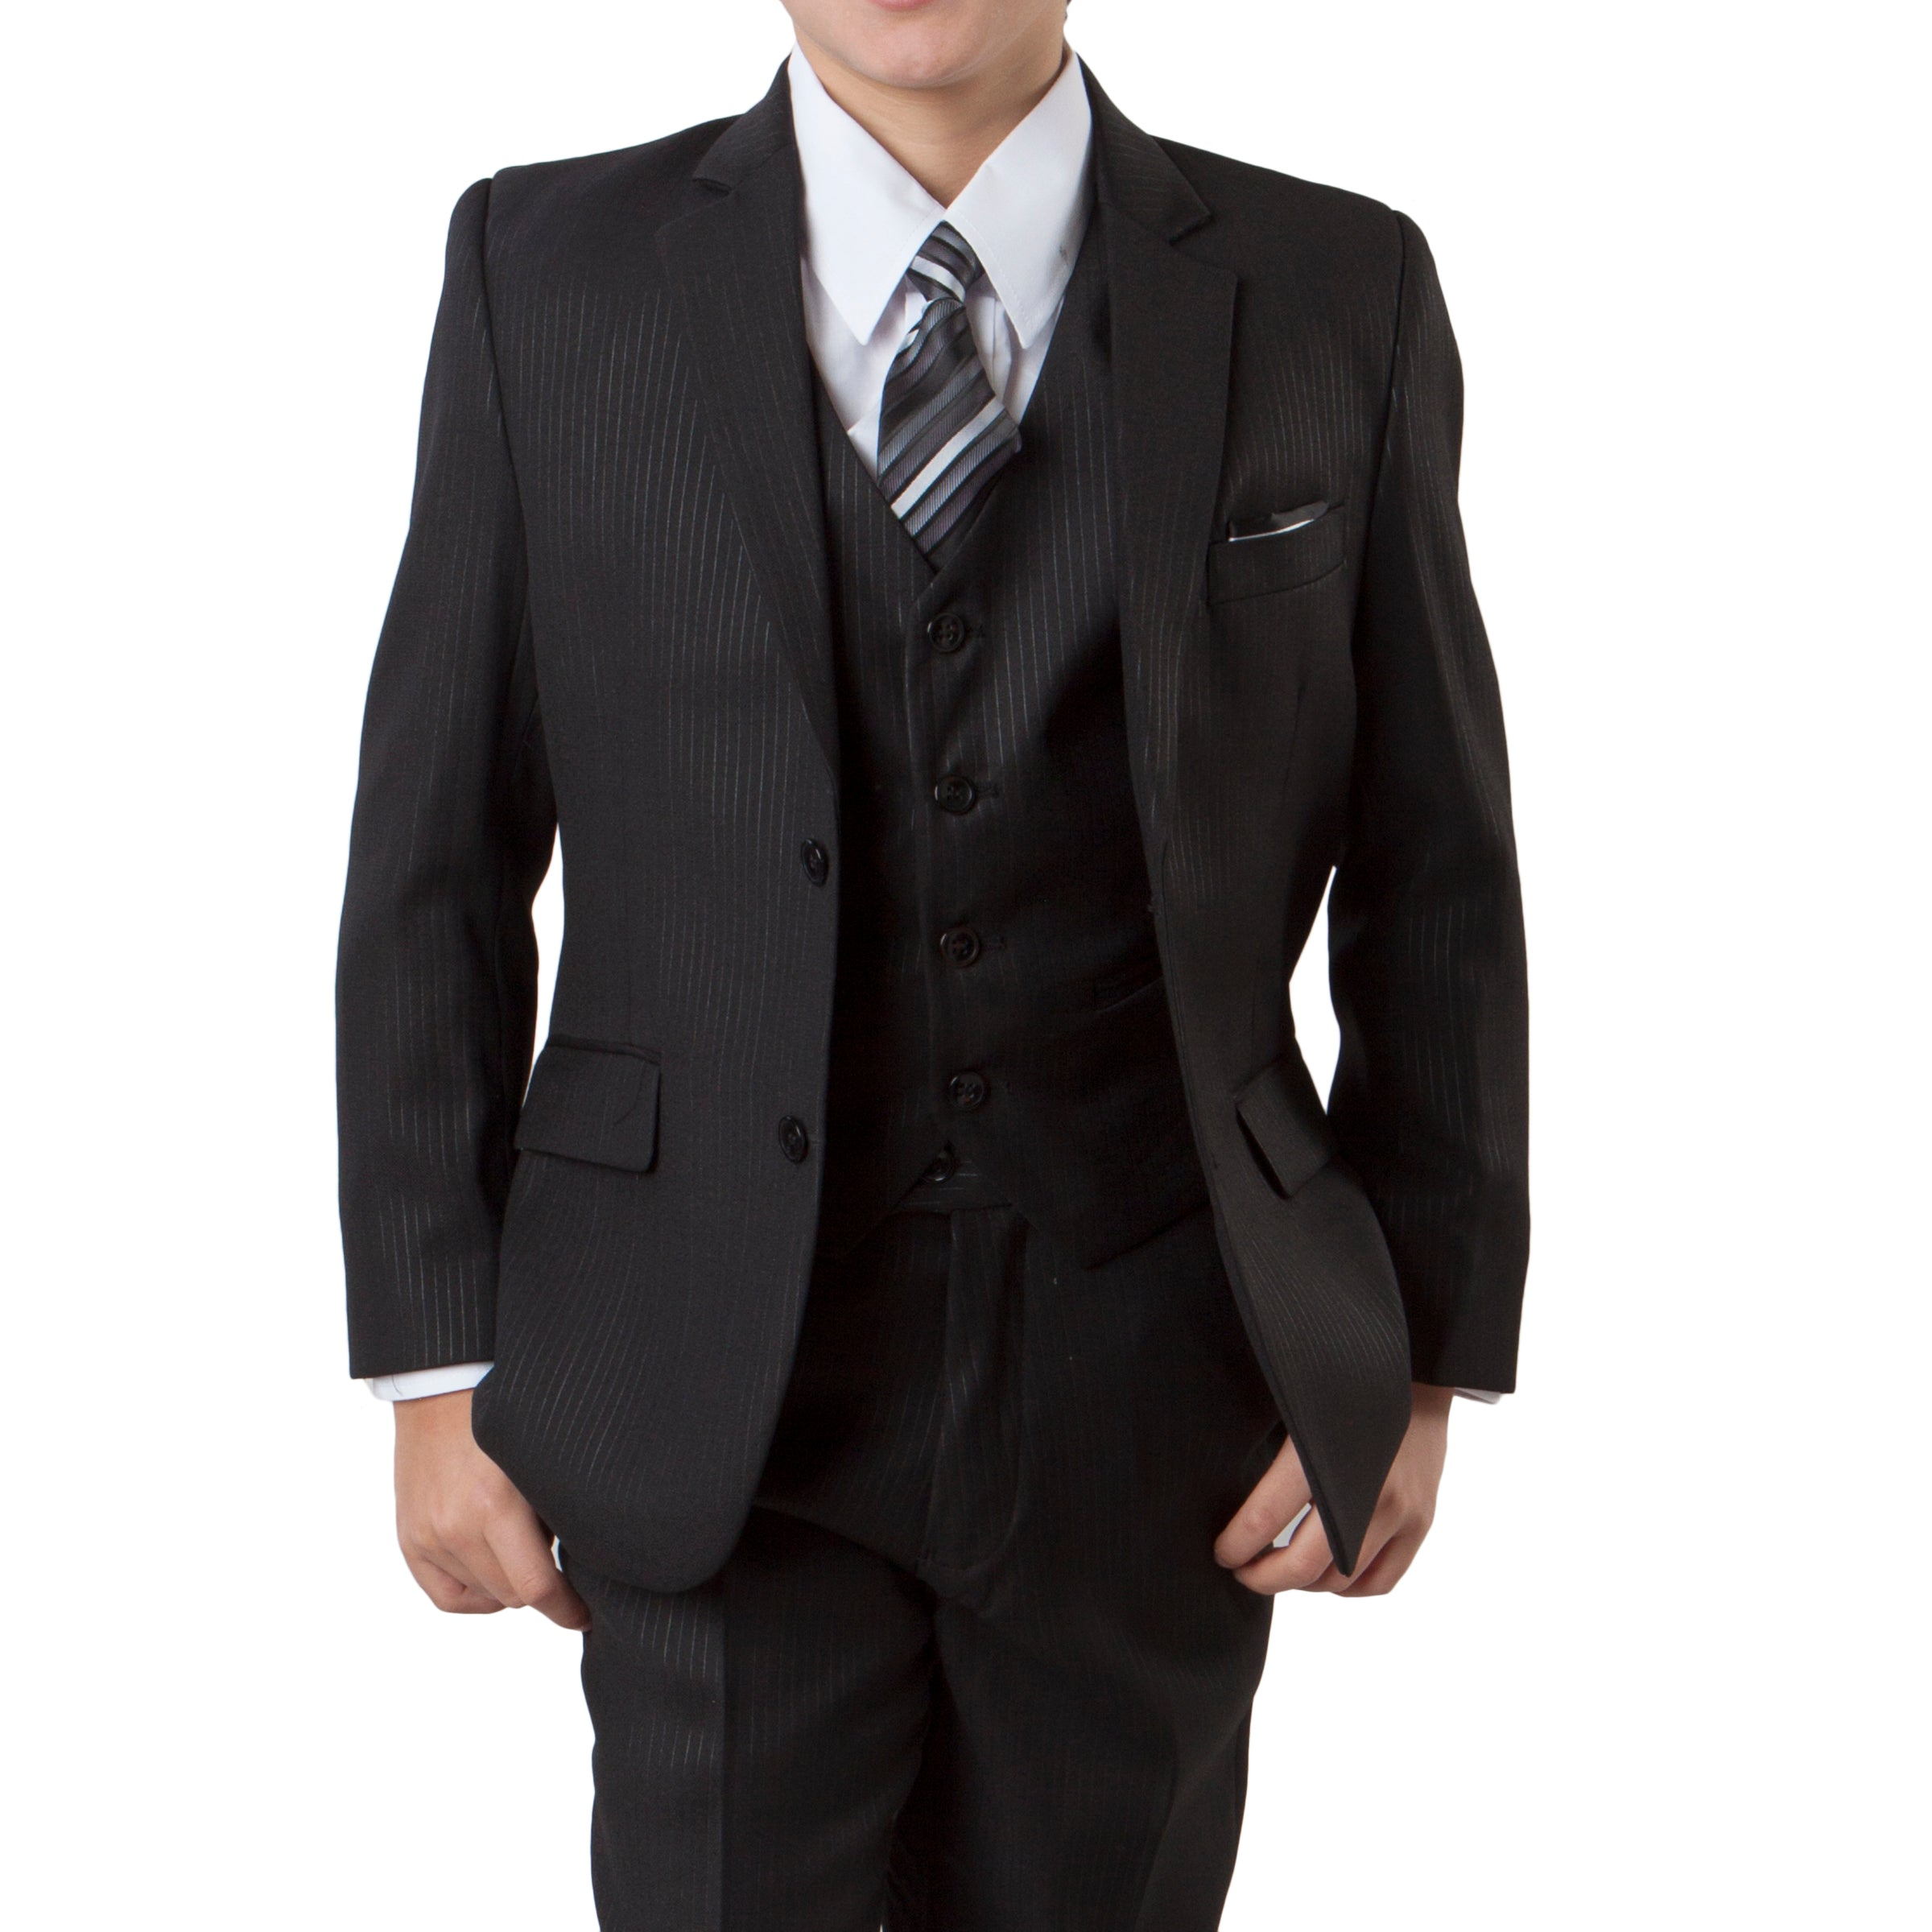 Tazio Black Formal Suits For Boys